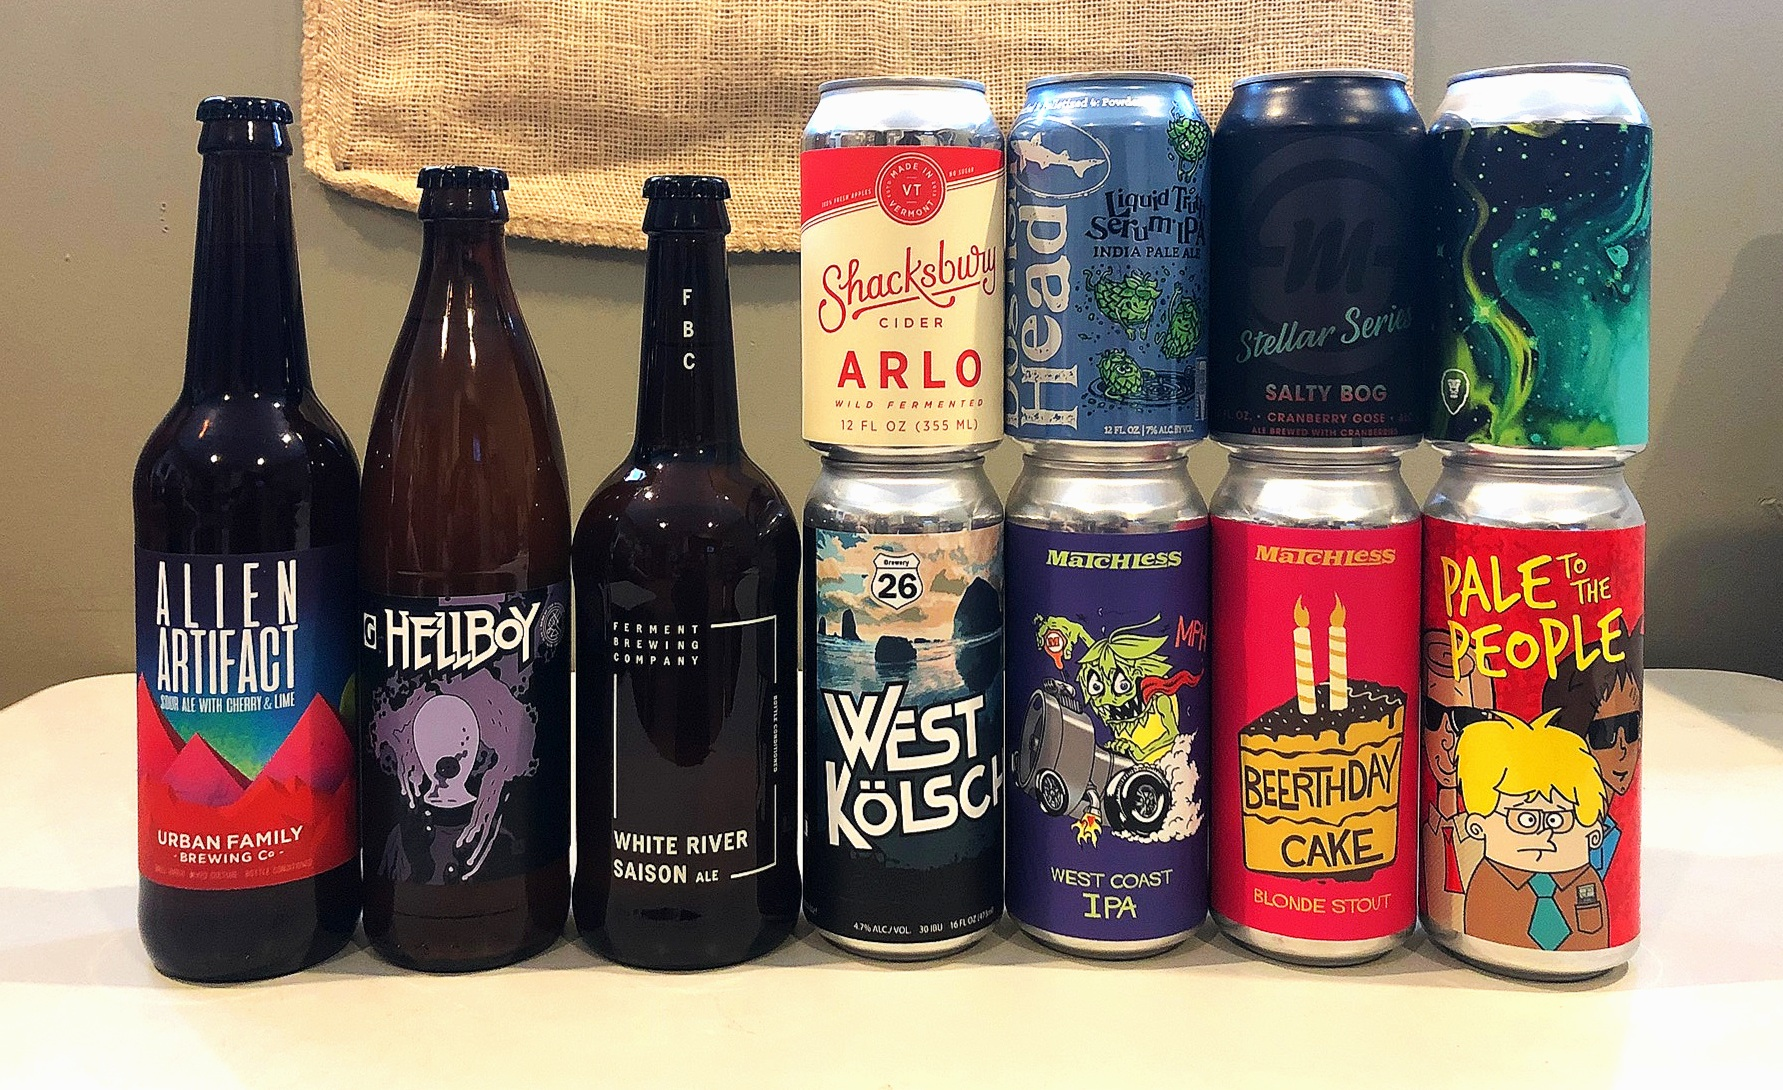 CLICK ON THE LINKS HERE TO FIND OUT MORE ABOUT THESE BEERS AND CIDERS:    Urban Family    -    Gigantic    -    Ferment    -    Shacksbury    -    Dogfish Head    -    Silvermoon    -    Aslan    -    Brewery 26    -    Matchless    -    Level